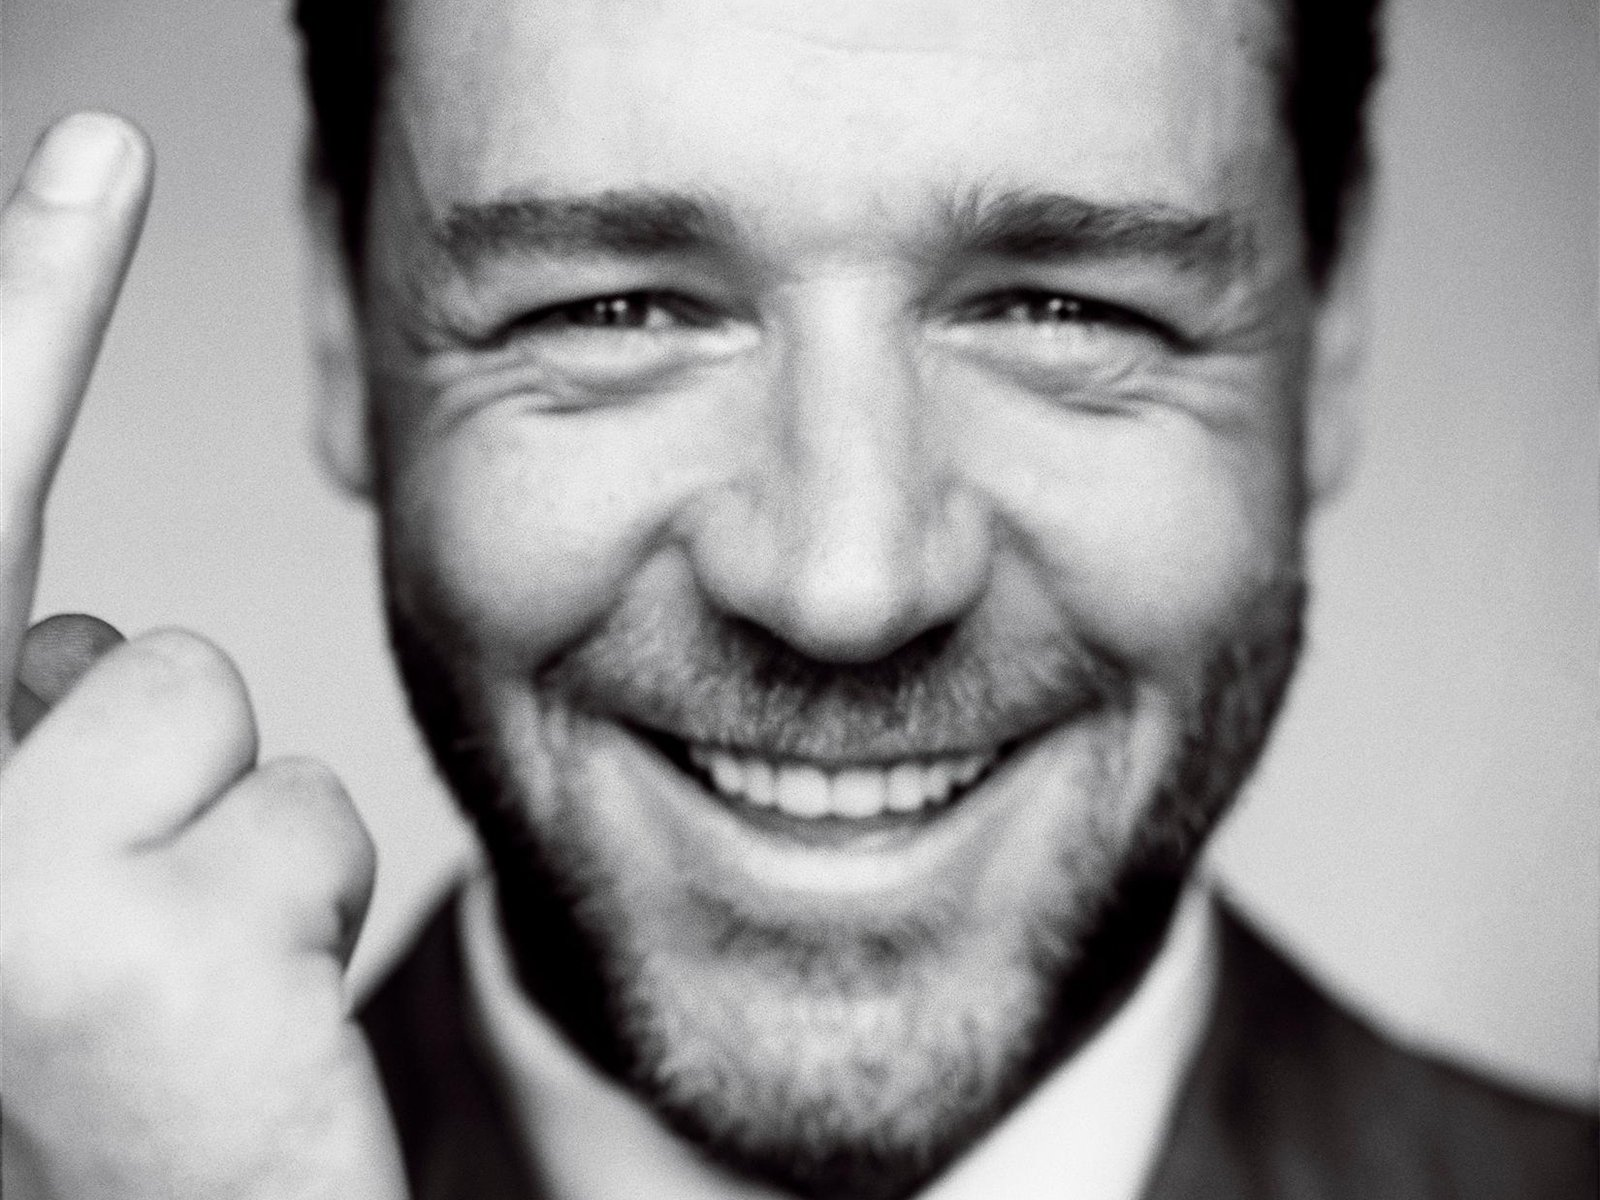 Happy birthday Russell Crowe